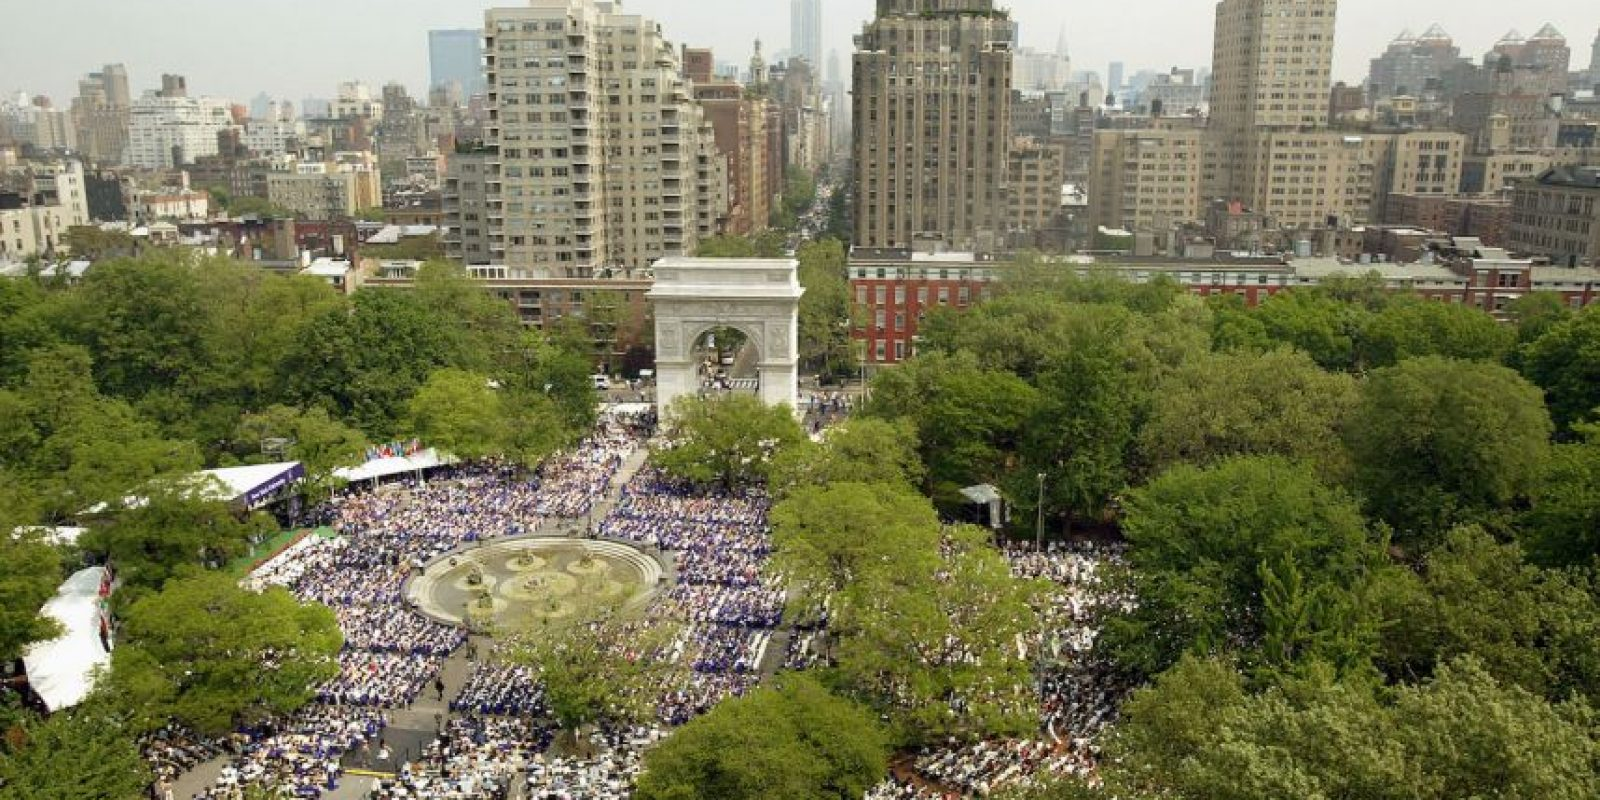 7. Universidad de Nueva York- 7 egresados multimillonarios. Foto: Getty